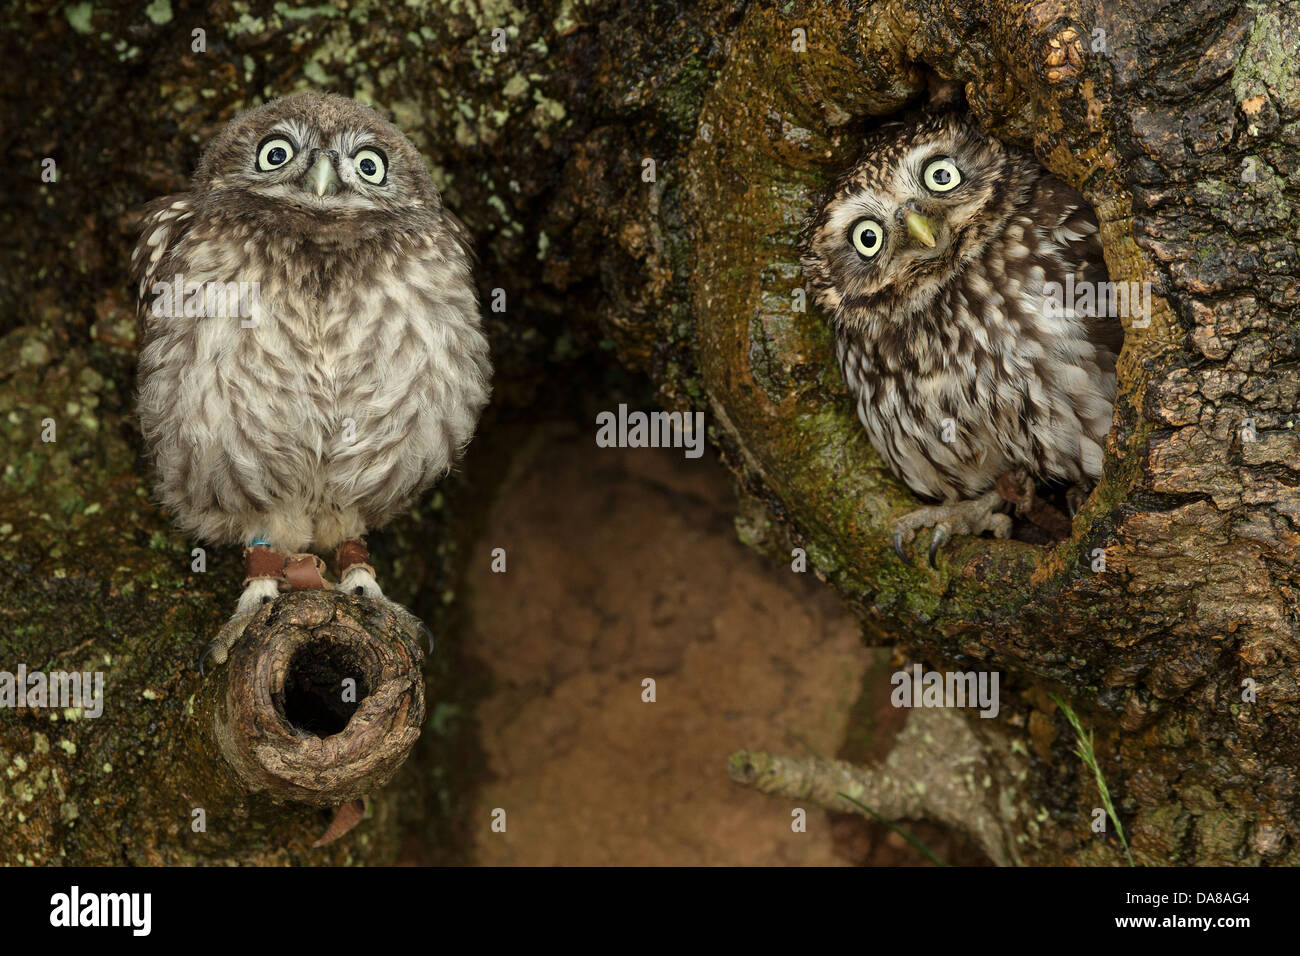 Pair of Little Owls (Athene Noctua) on tree trunk - Stock Image